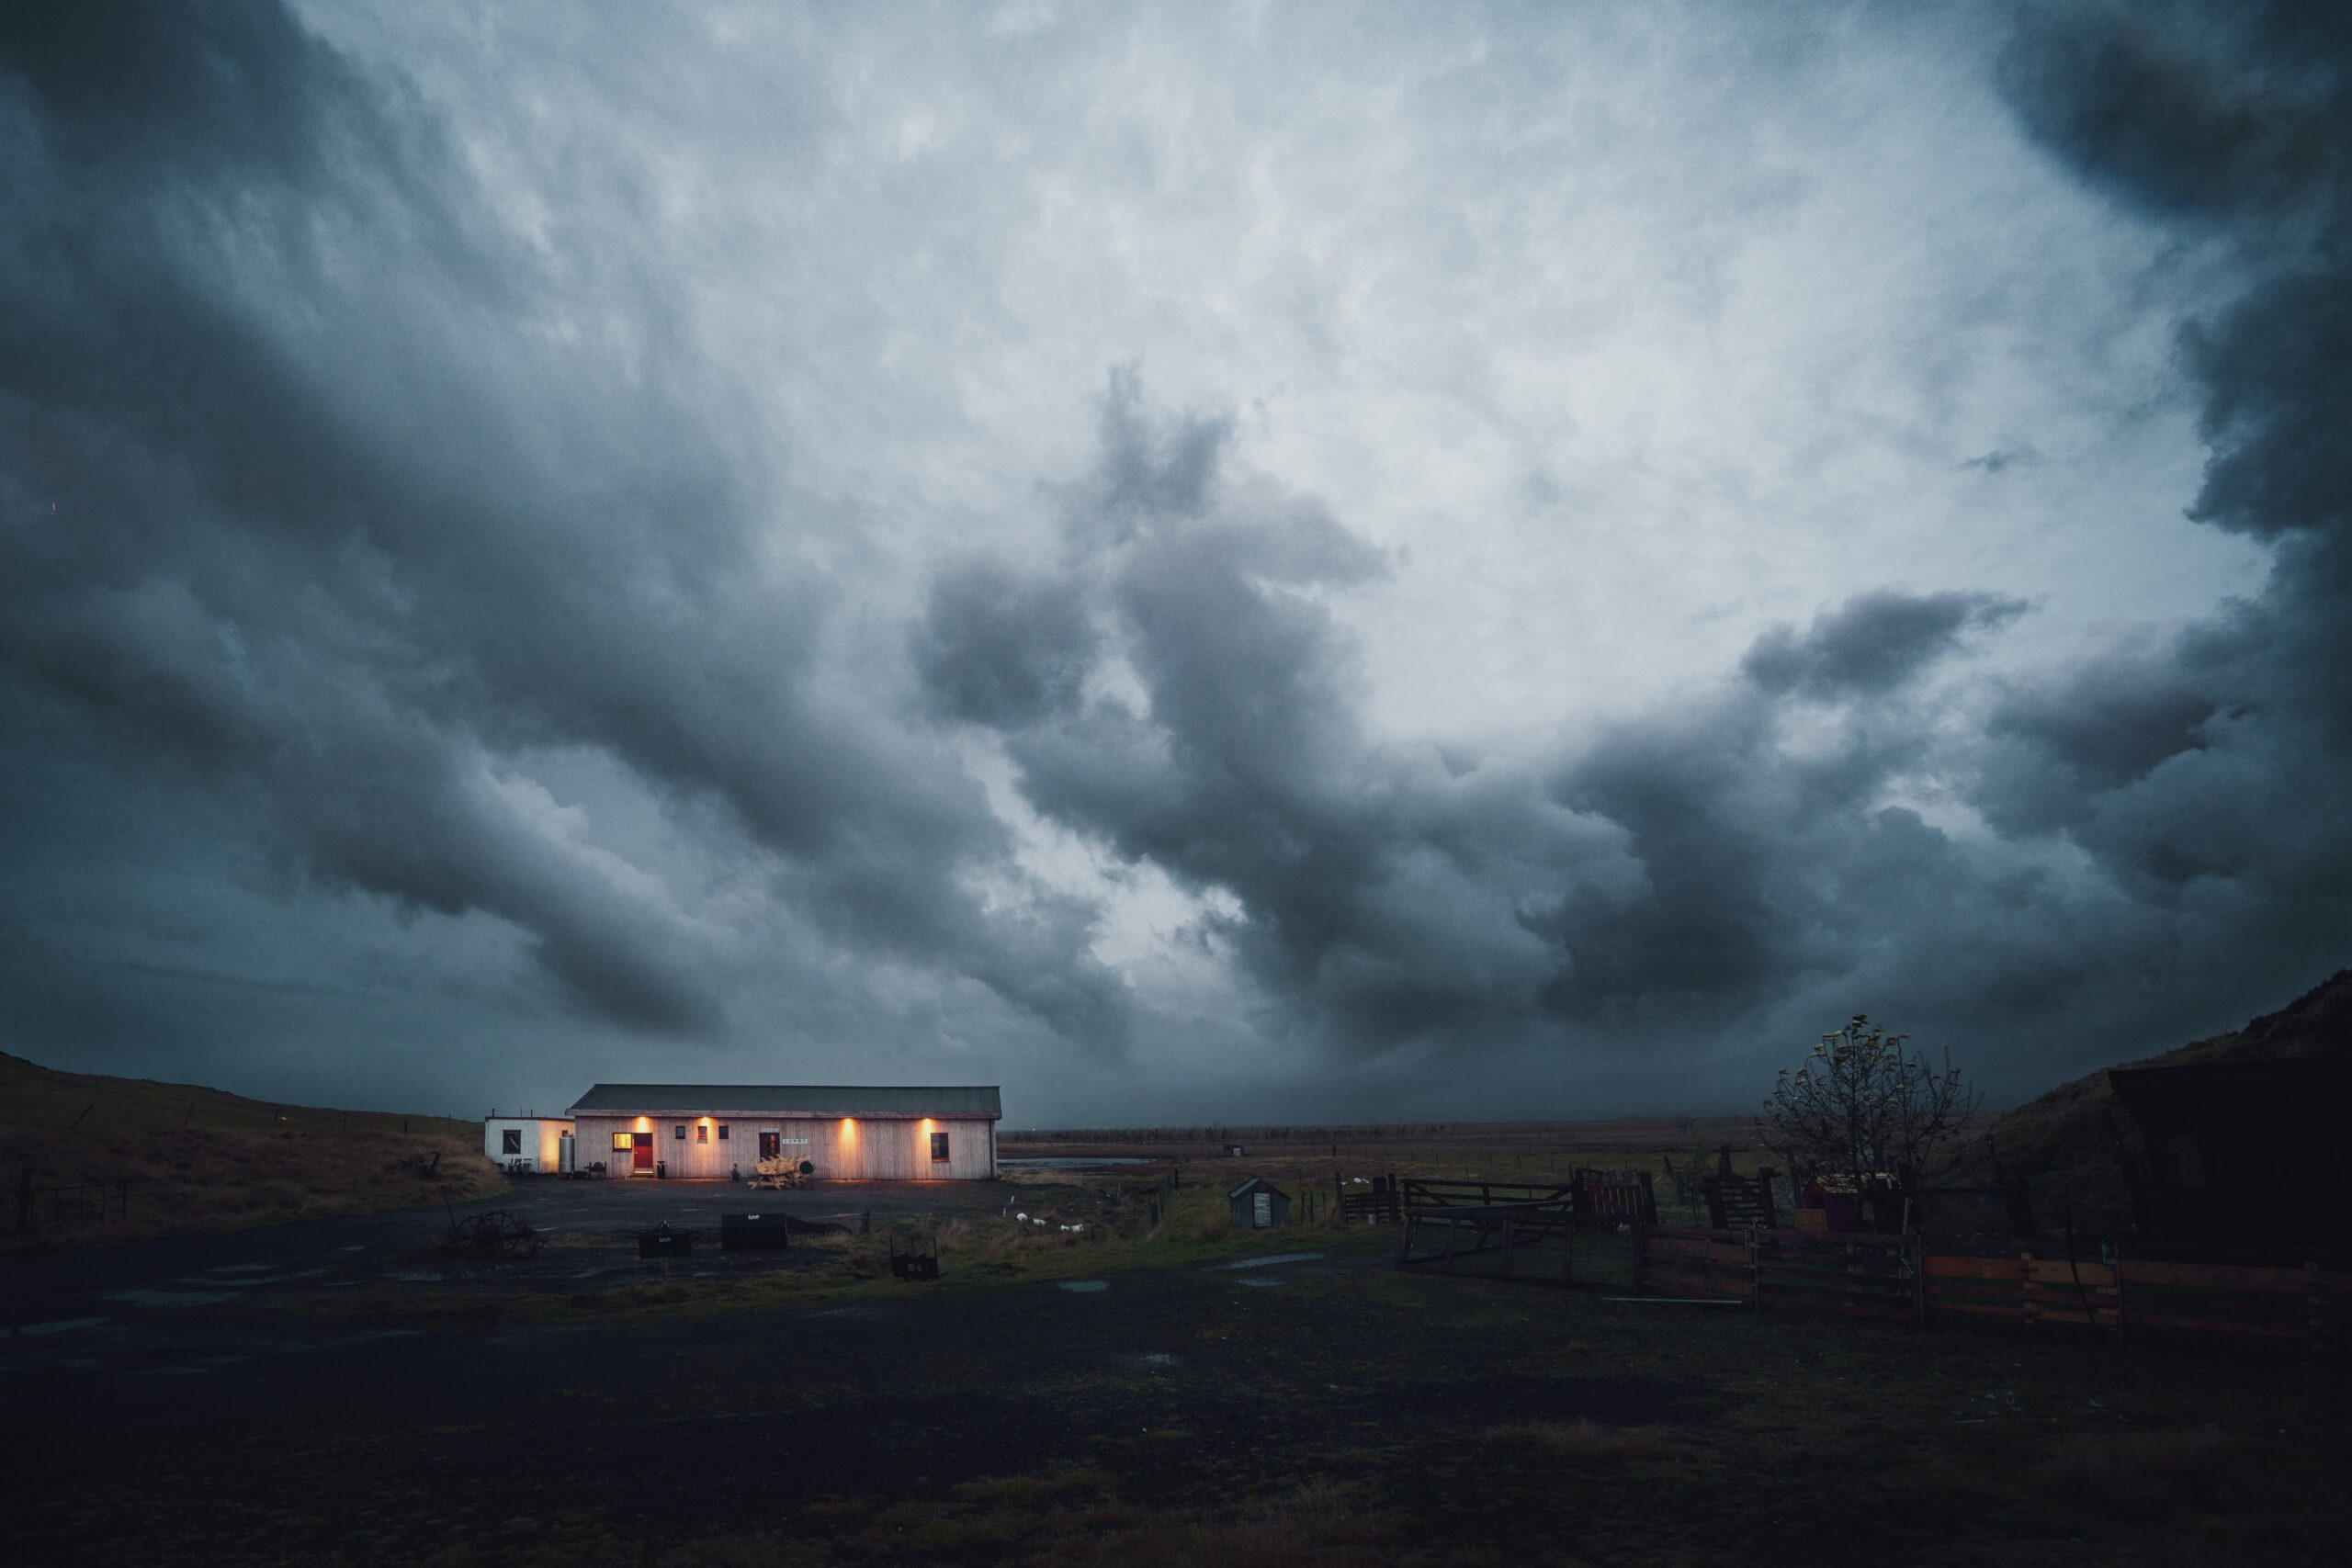 cloudy sky over lighted house